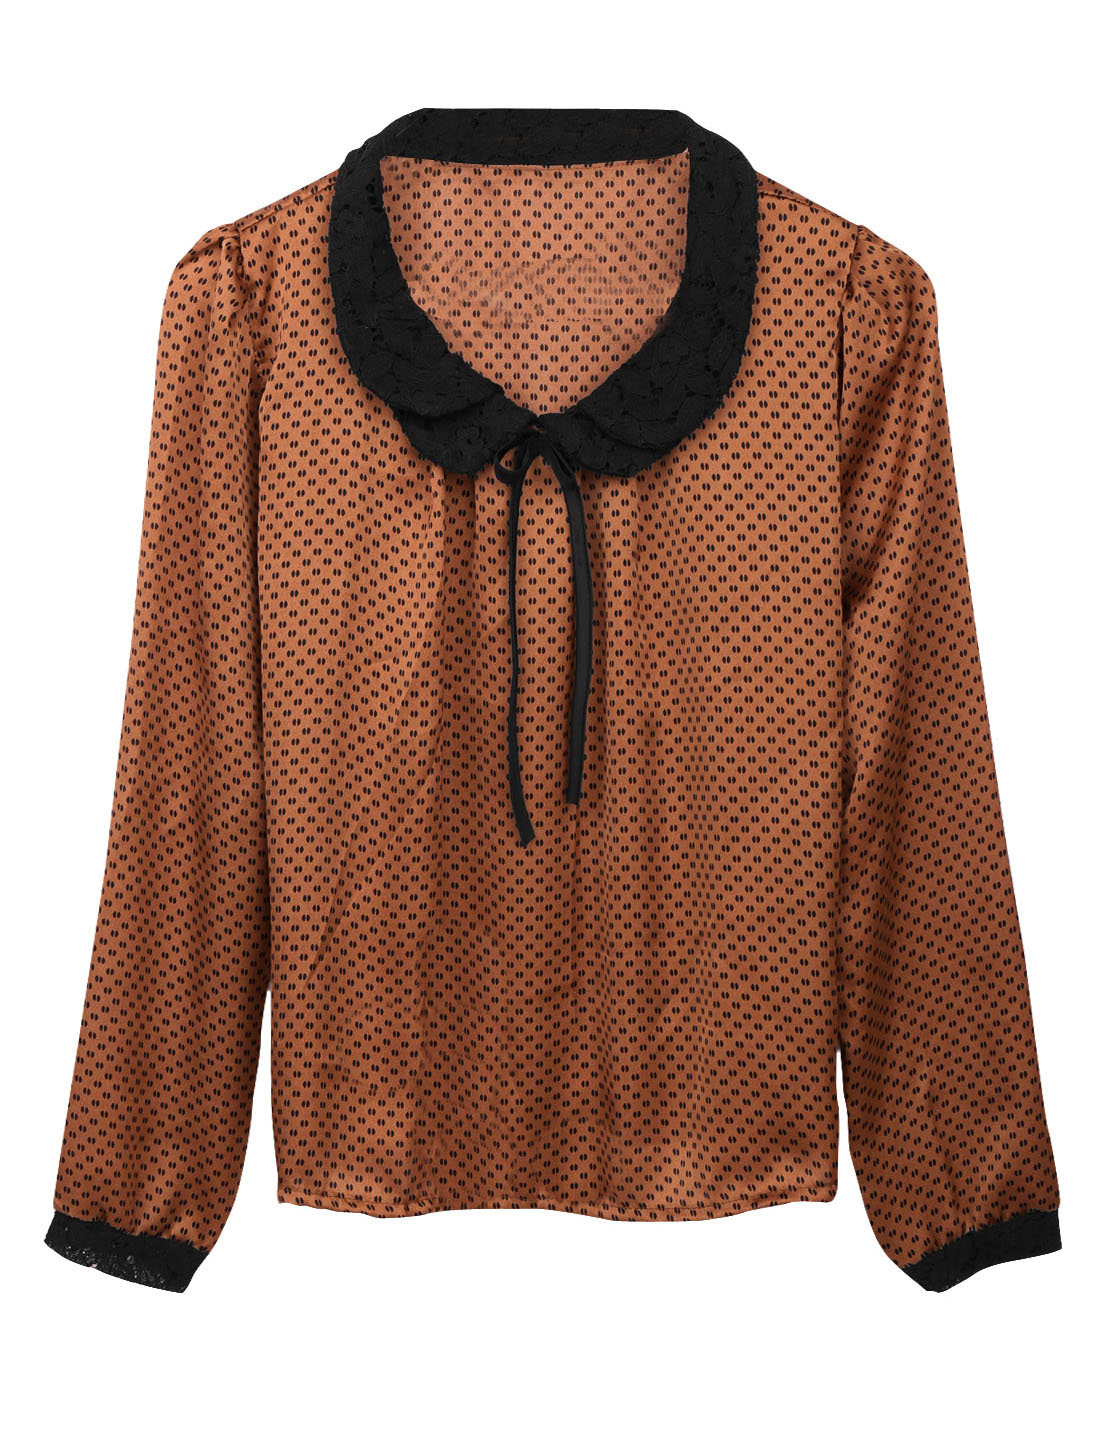 Women Peter Pan Collar Long Sleeves Dots Top Brown M